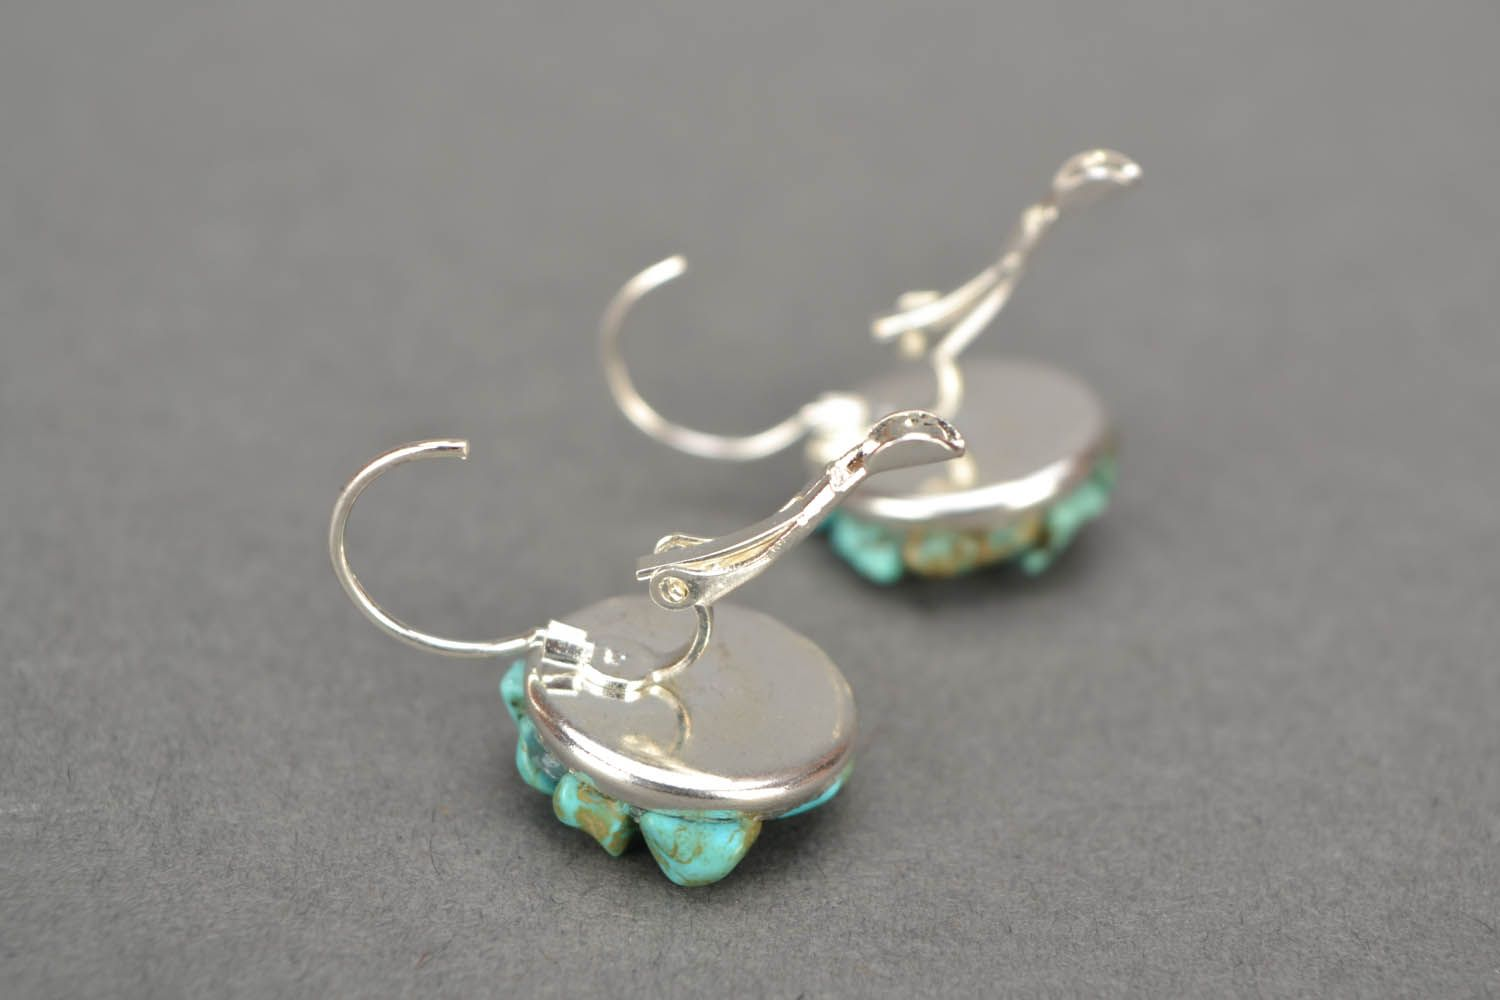 Handmade turquoise earrings photo 5